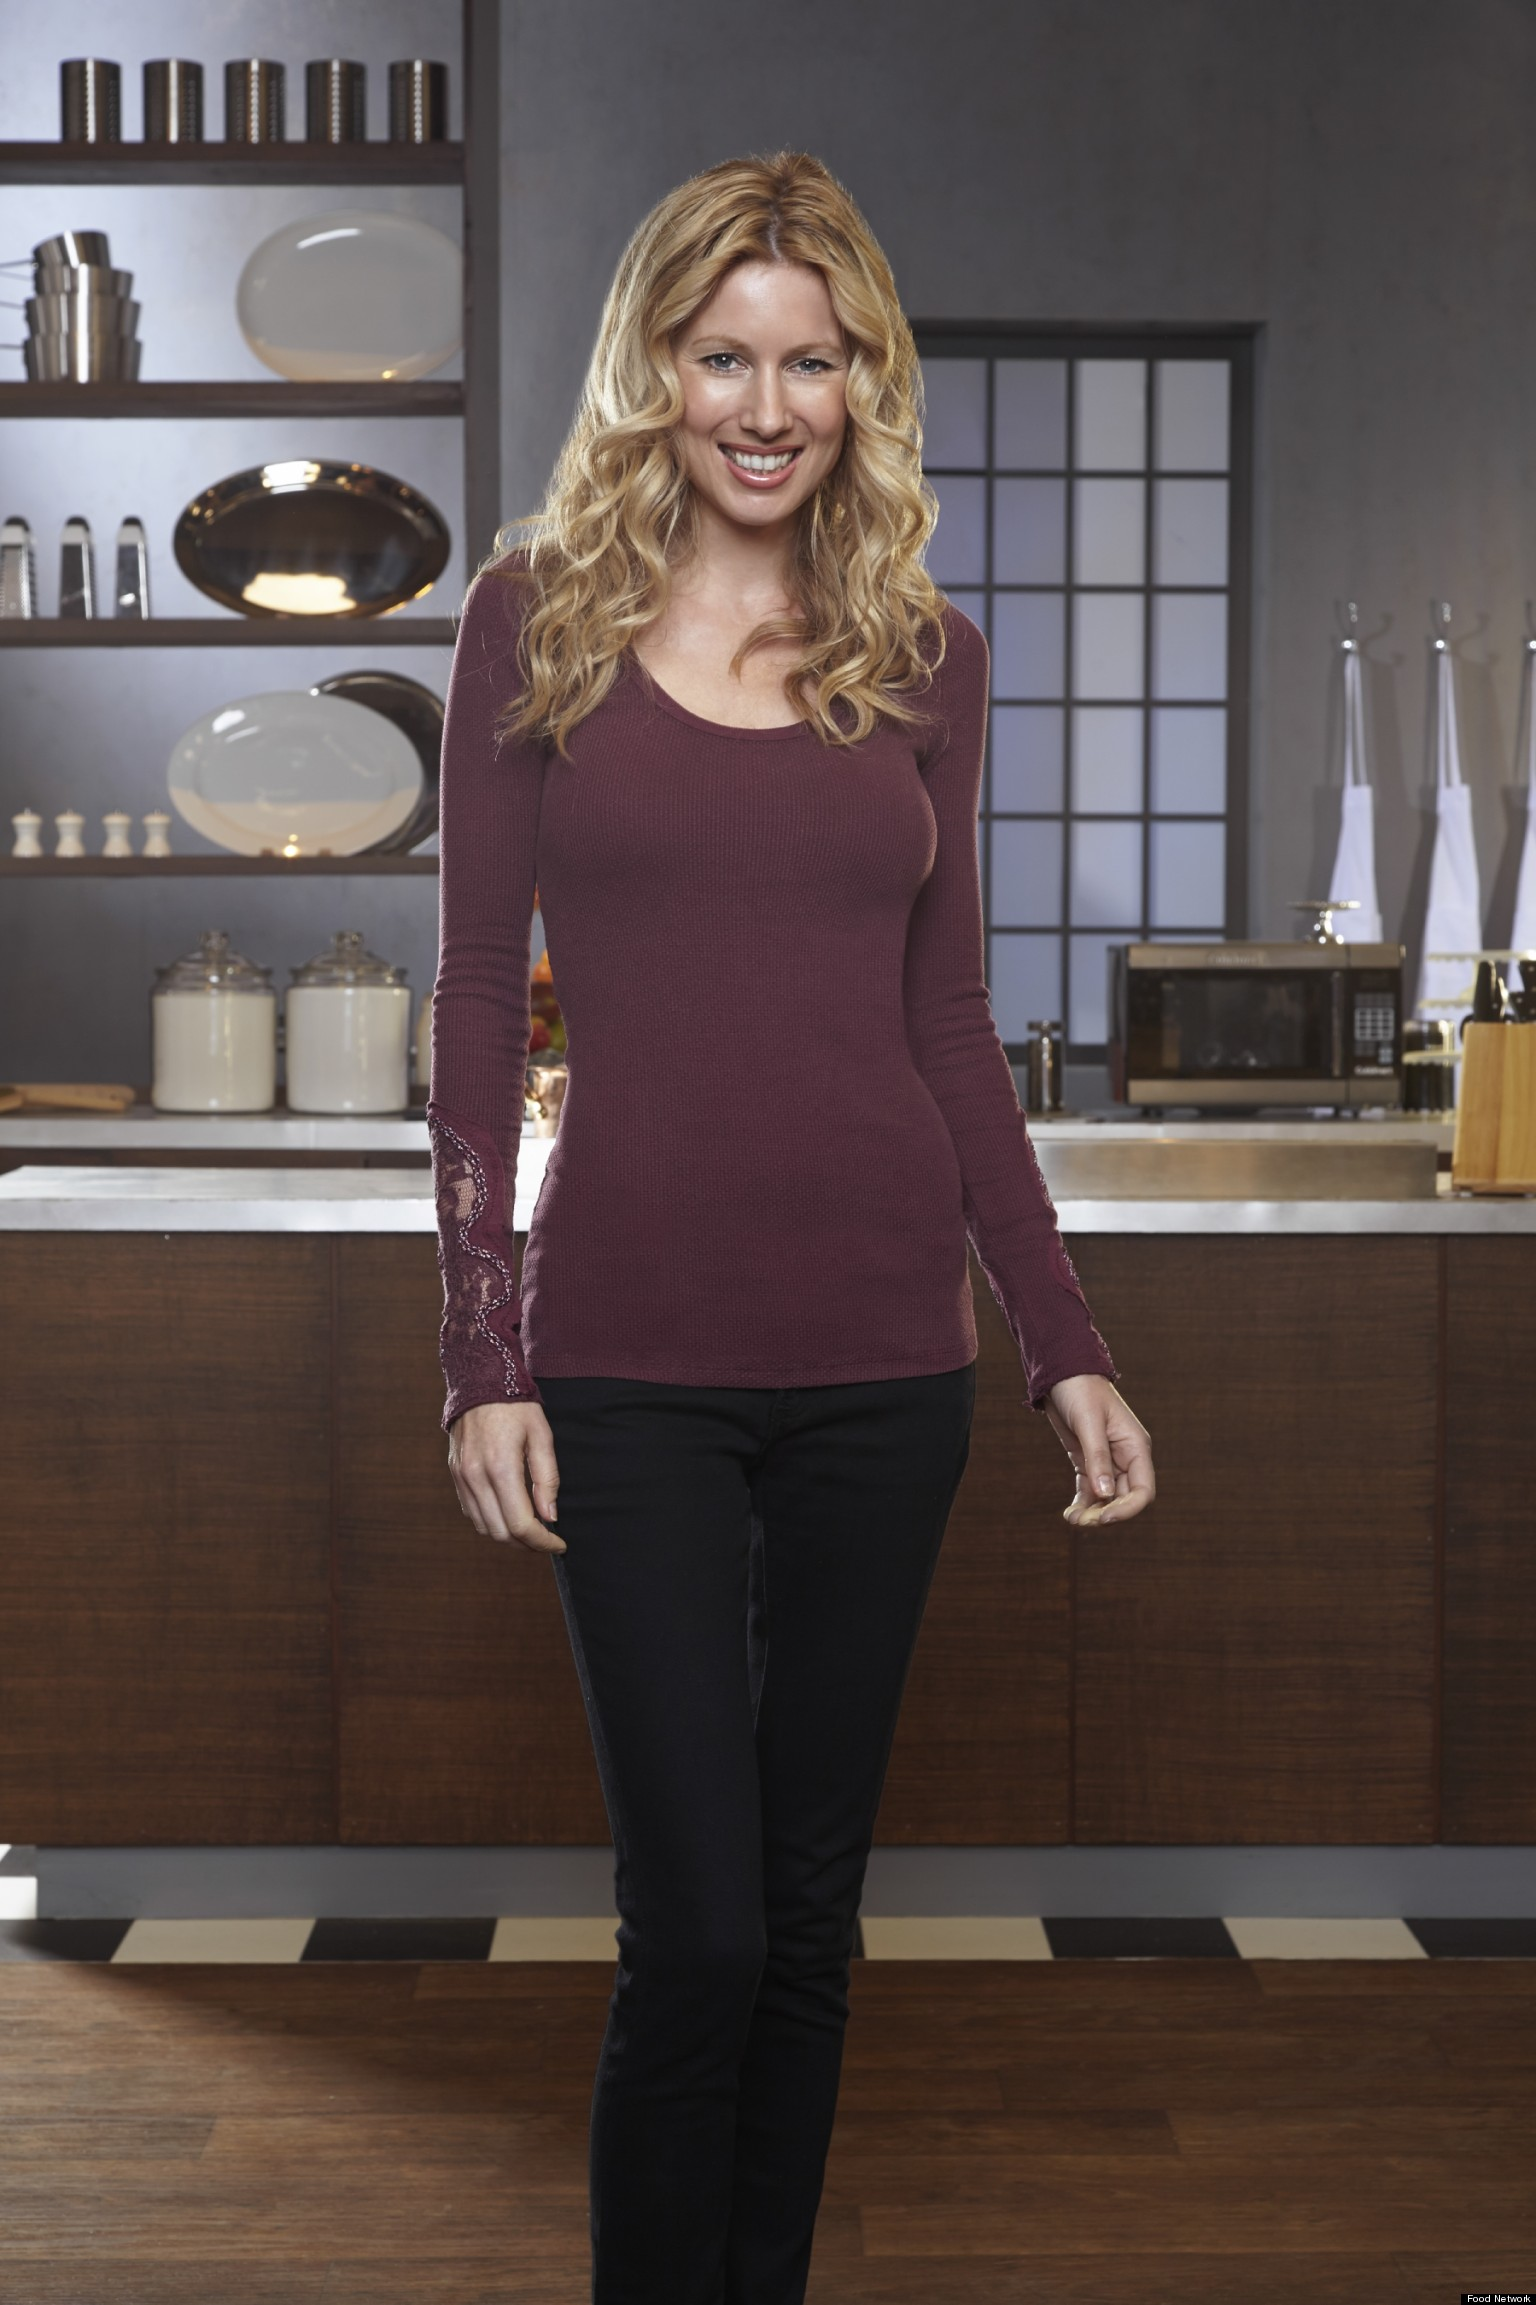 Food Network Star Danushka Lysek